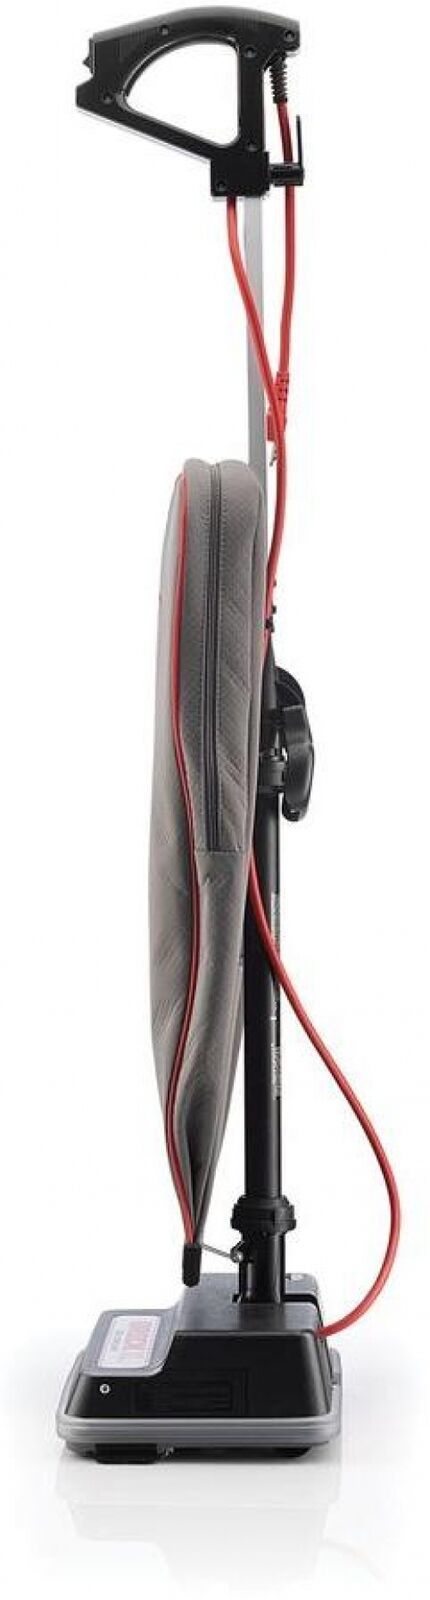 Upright Vacuum Cleaner 47.75 in. Fingertip-Controlled Carpet Height Adjustment image 5